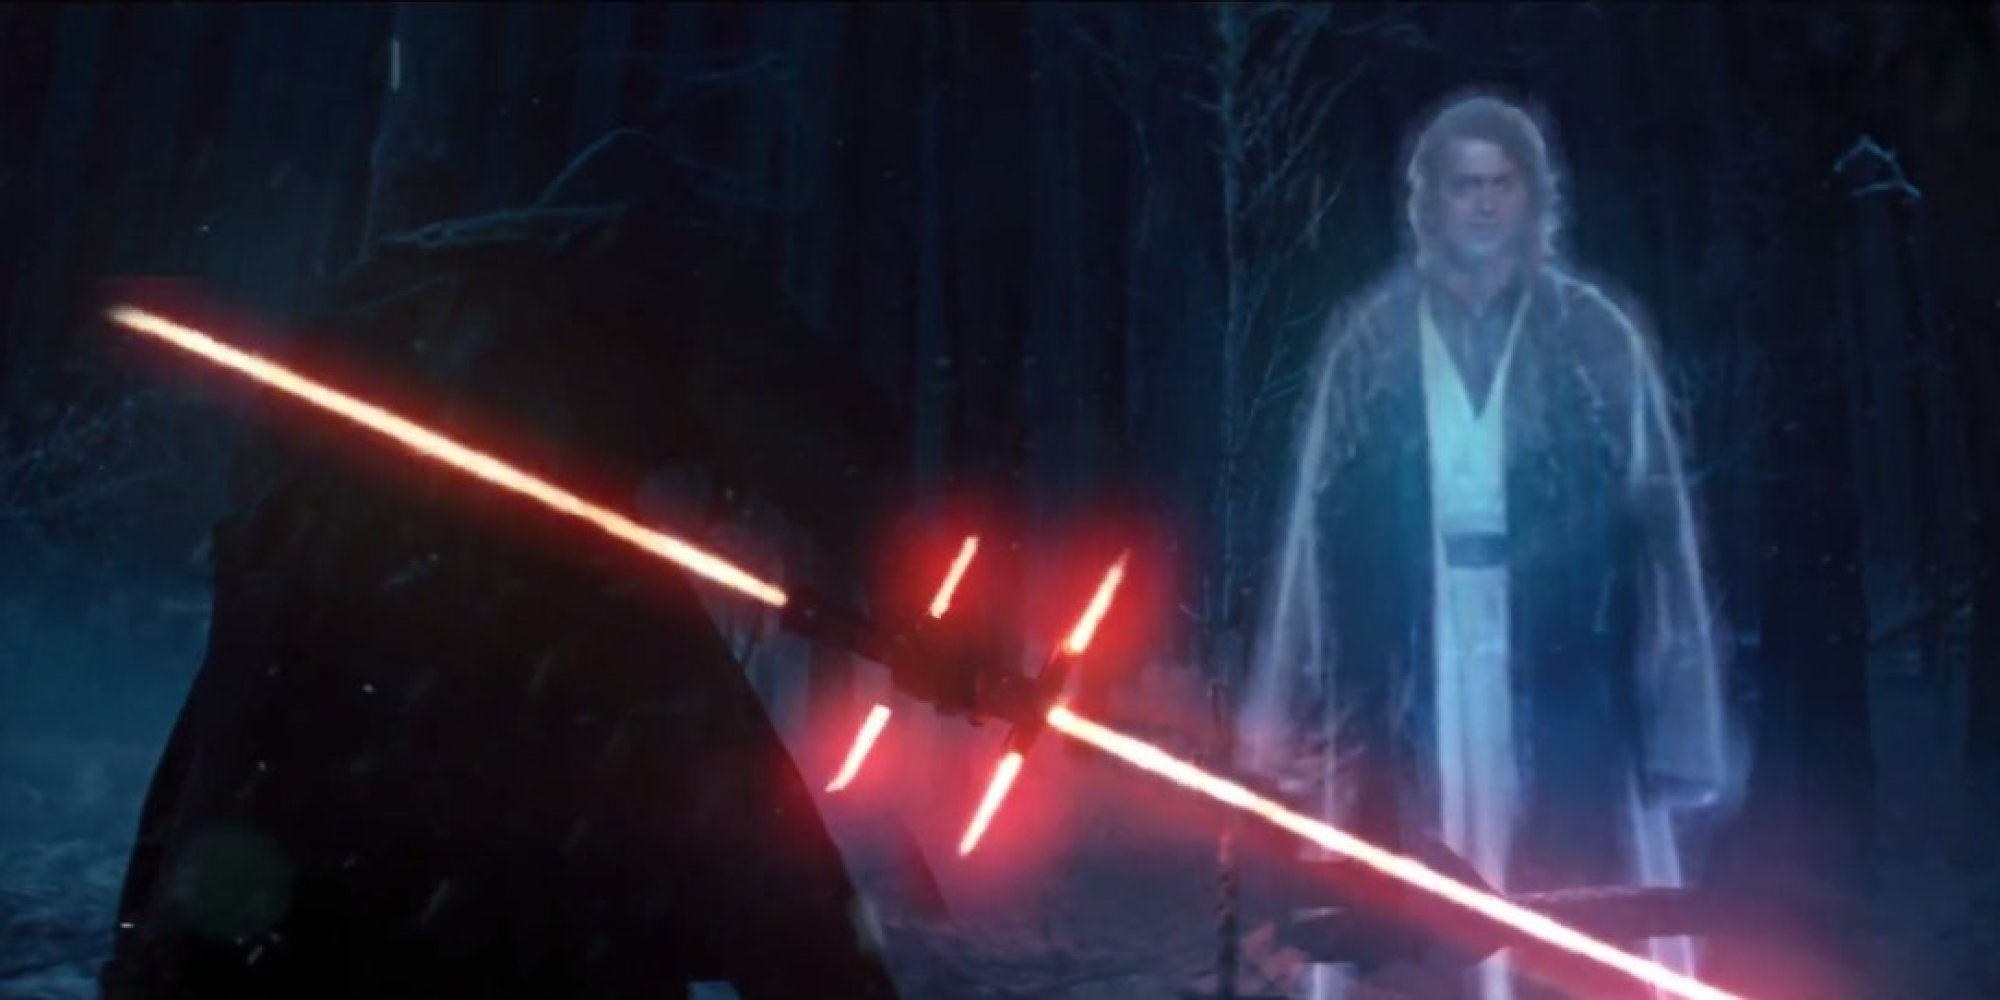 The U0027Star Wars: The Force Awakensu0027 Teaser Gets A George Lucas Makeover |  HuffPost